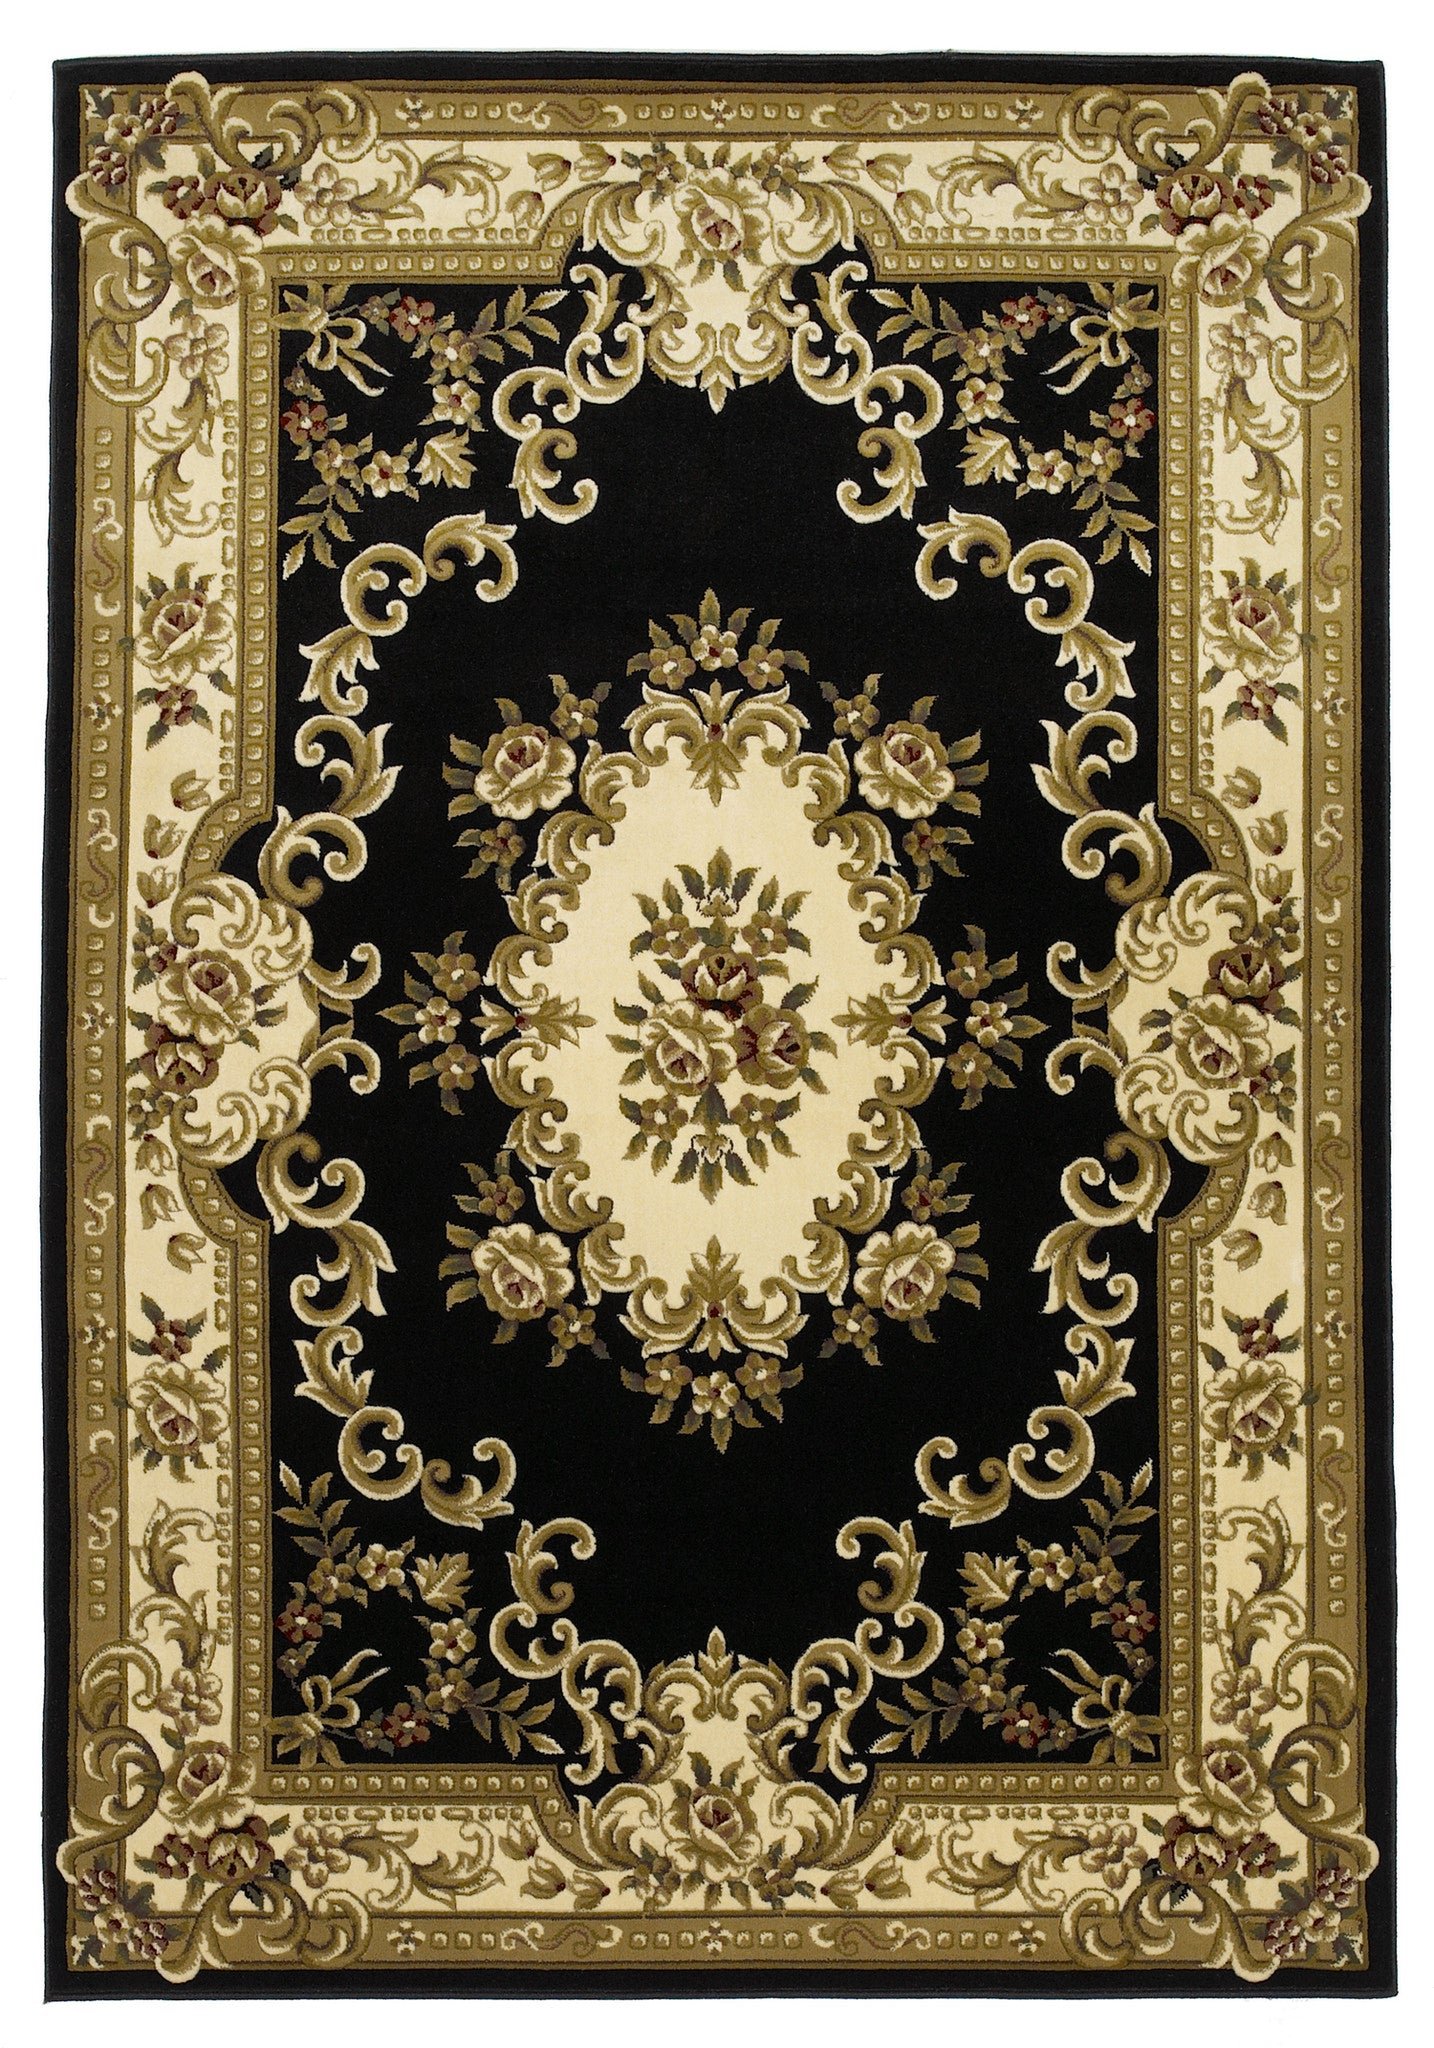 KAS Corinthian 5310 Black/Ivory Aubusson Machine Woven Area Rug